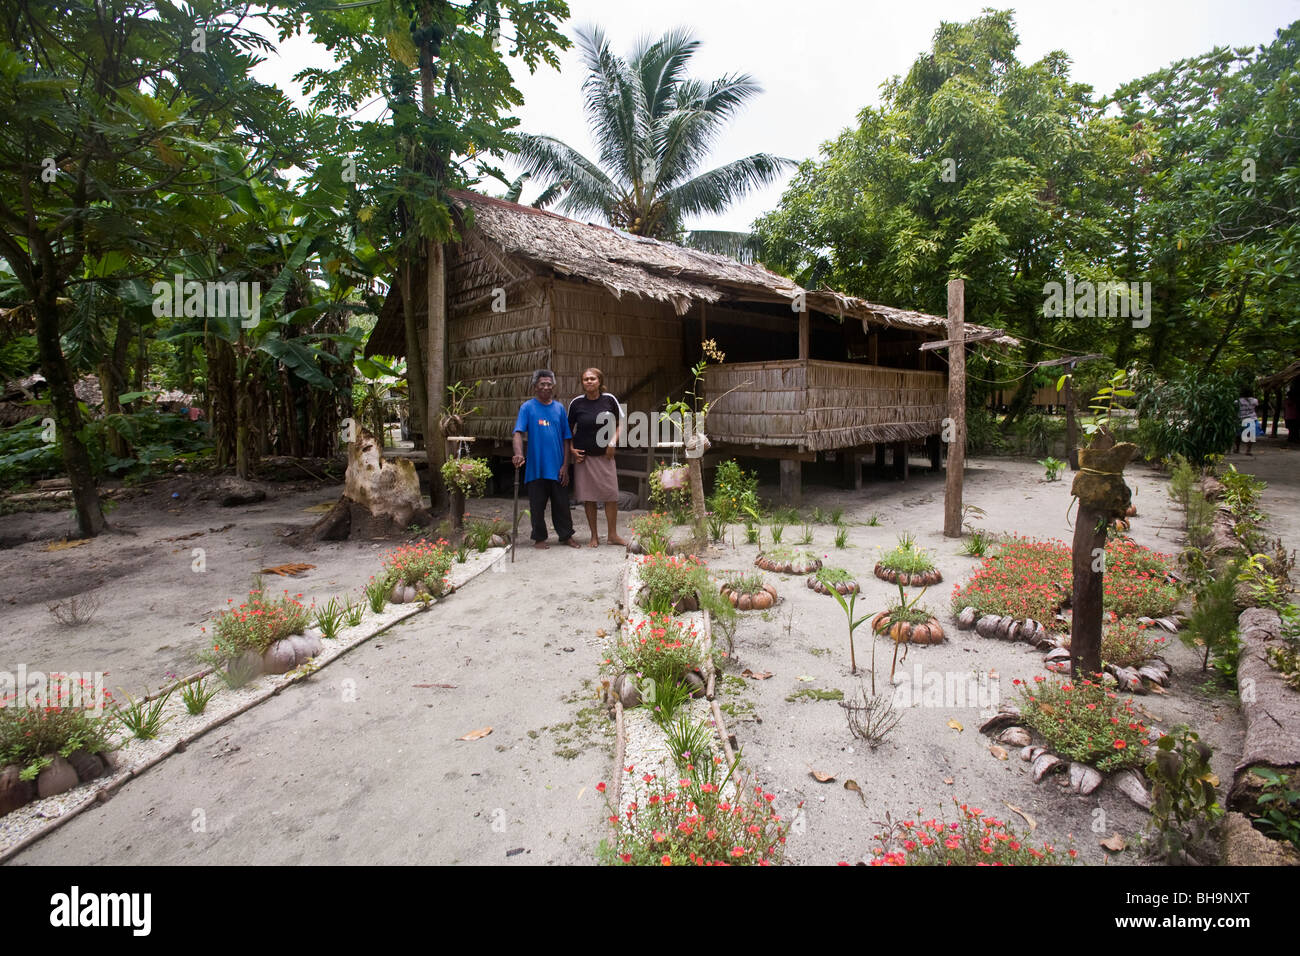 Two men stand in front of a handmade thatch hut Santa Ana Island Soloman Islands - Stock Image